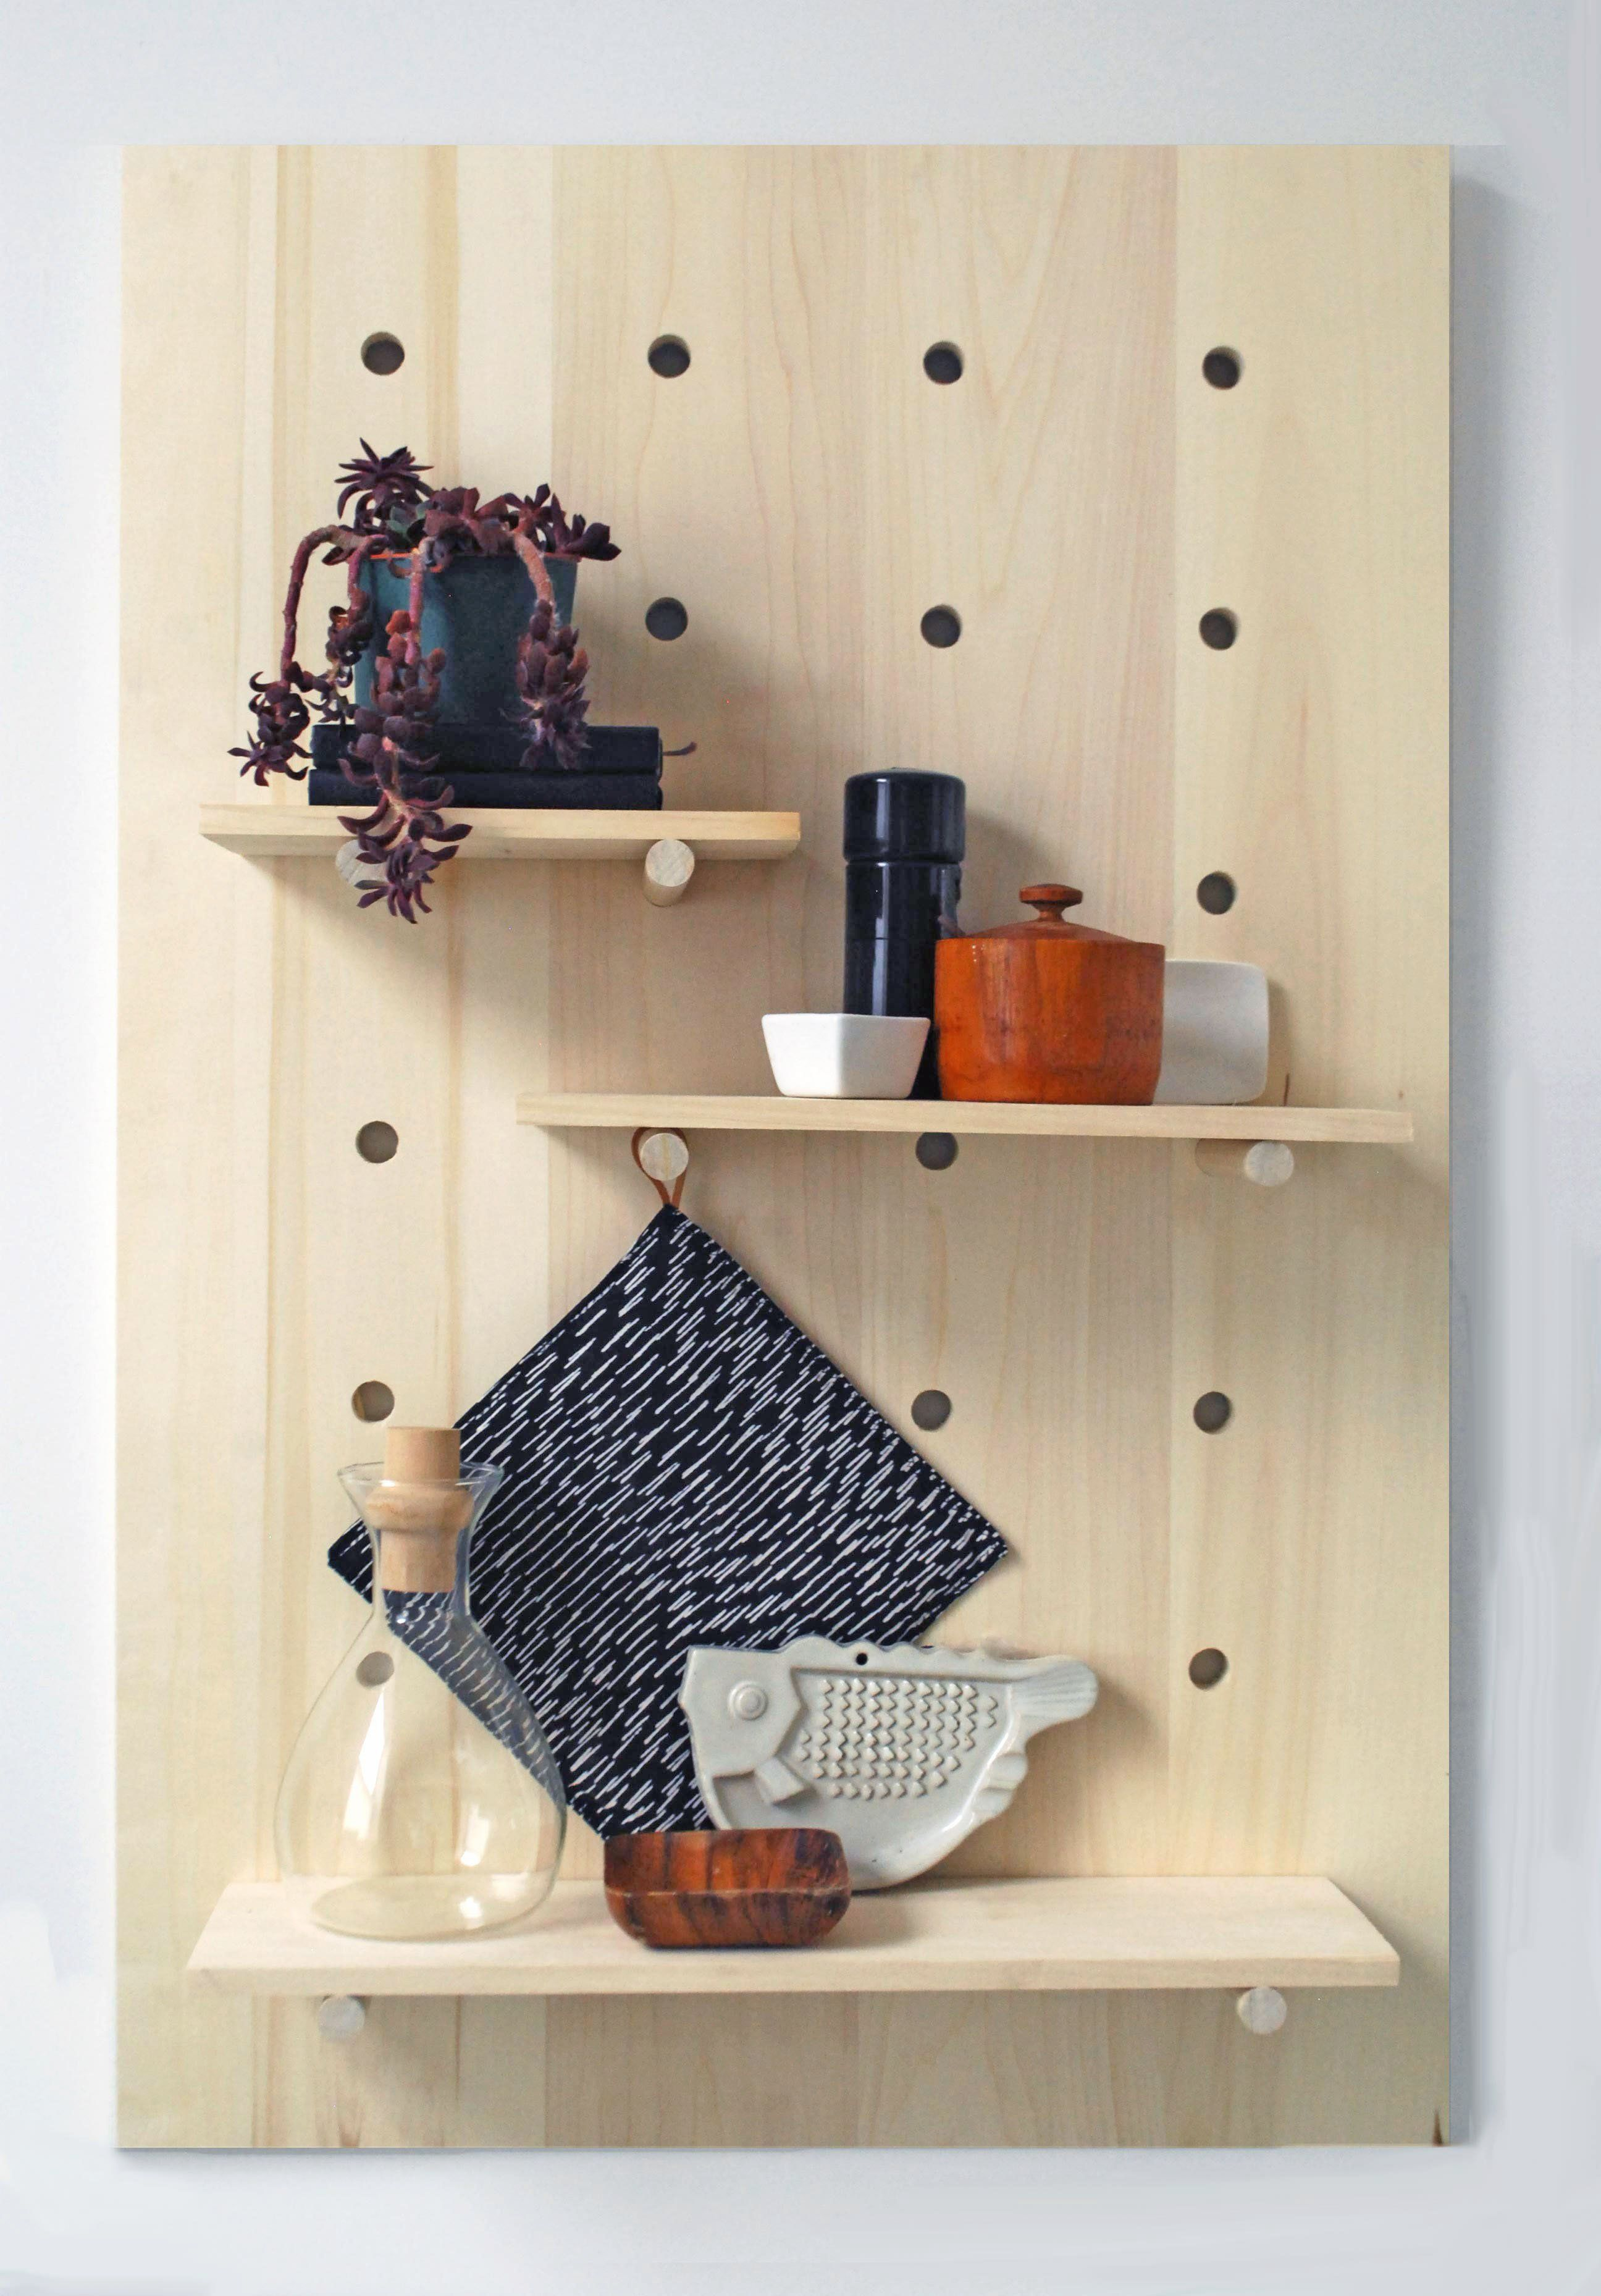 A dozen diys for a badass kitchen on a budget modern shelving